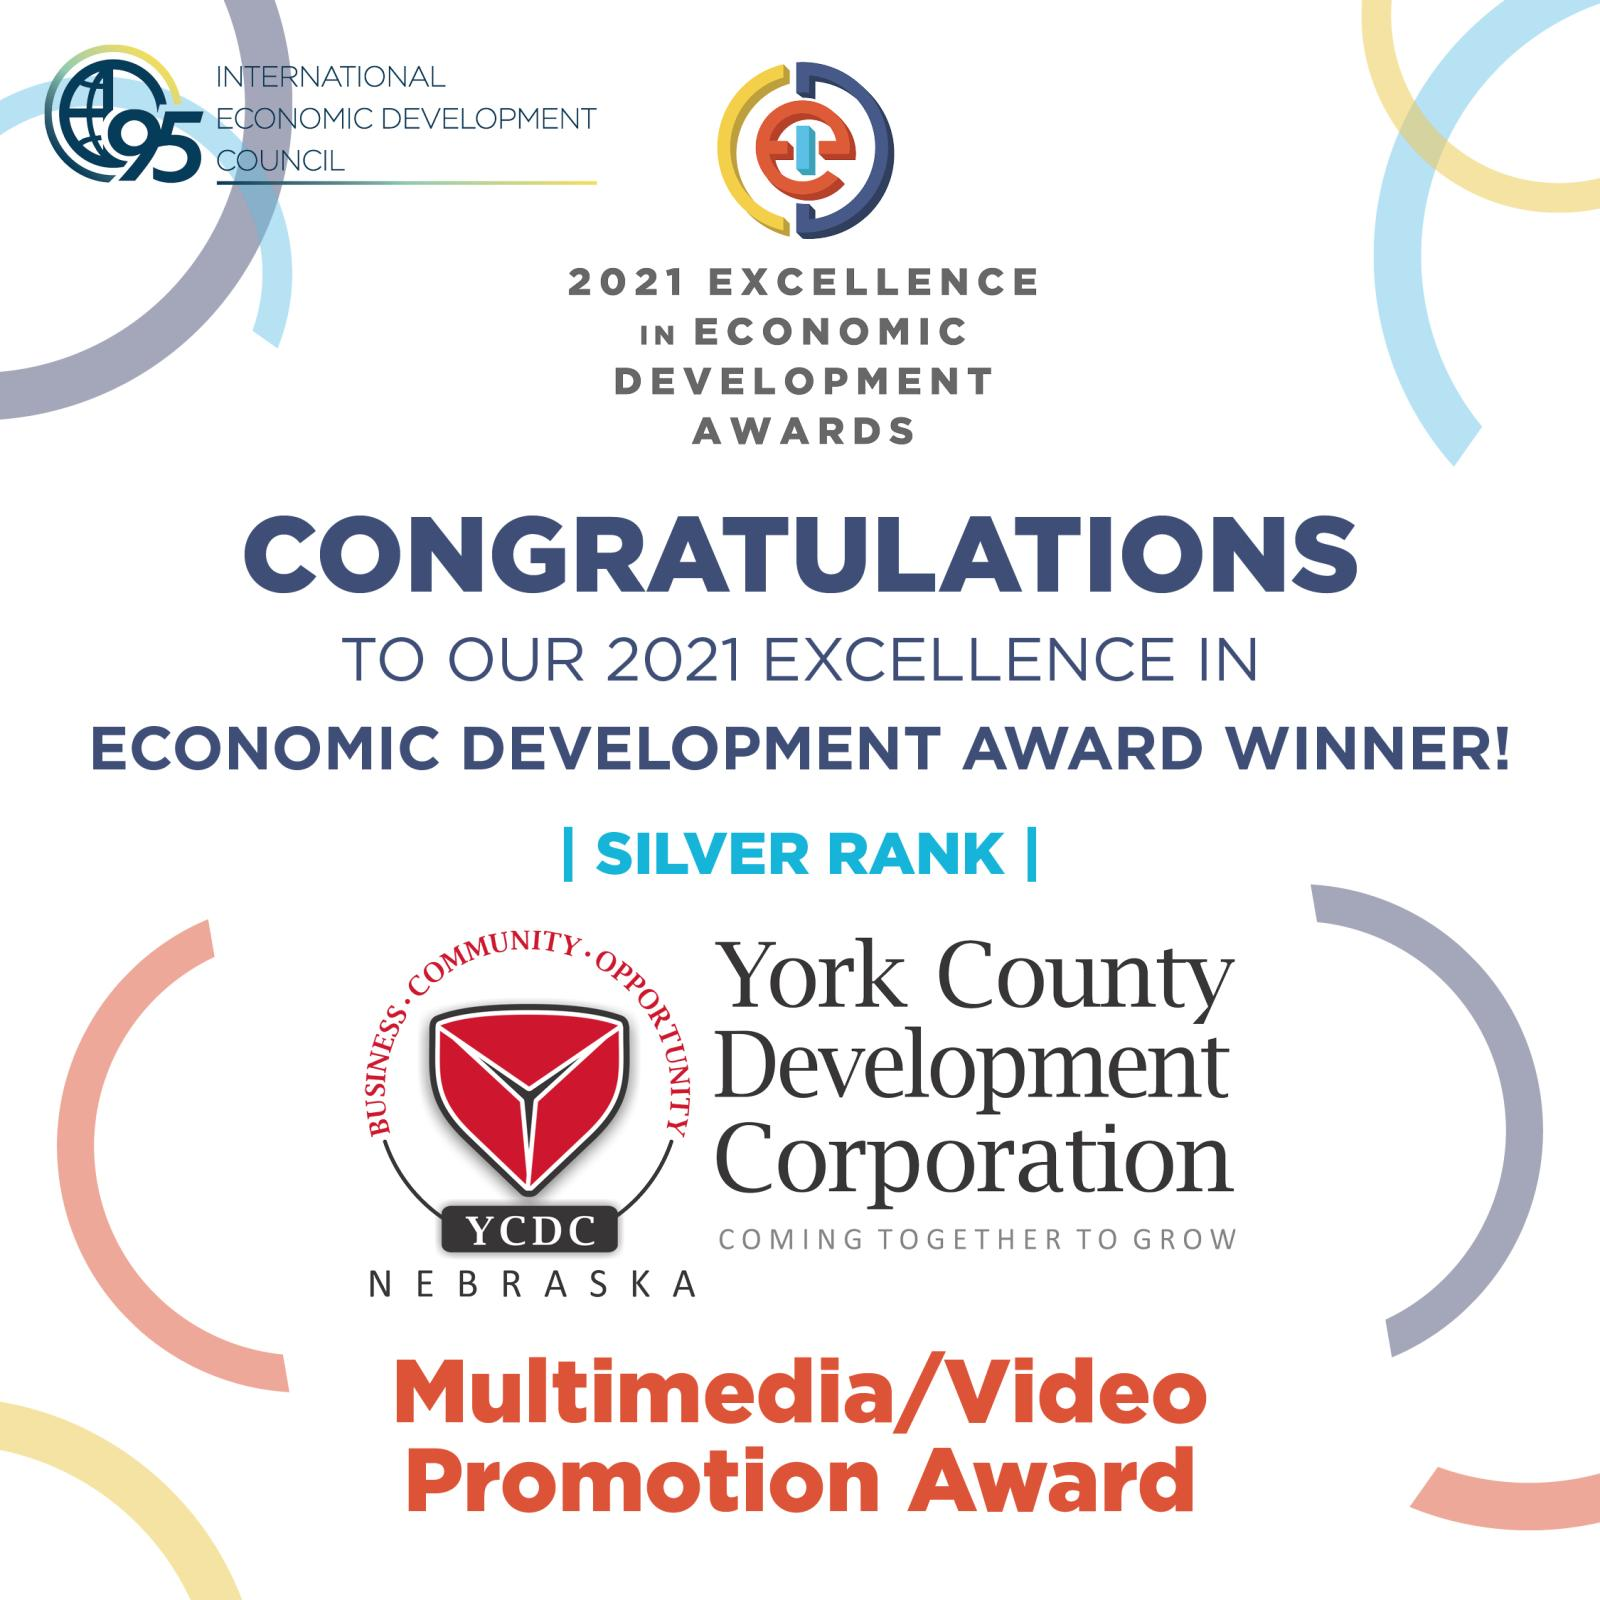 York County Development Corporation Receives Excellence in Economic Development Award from the International Economic Development Council Main Photo